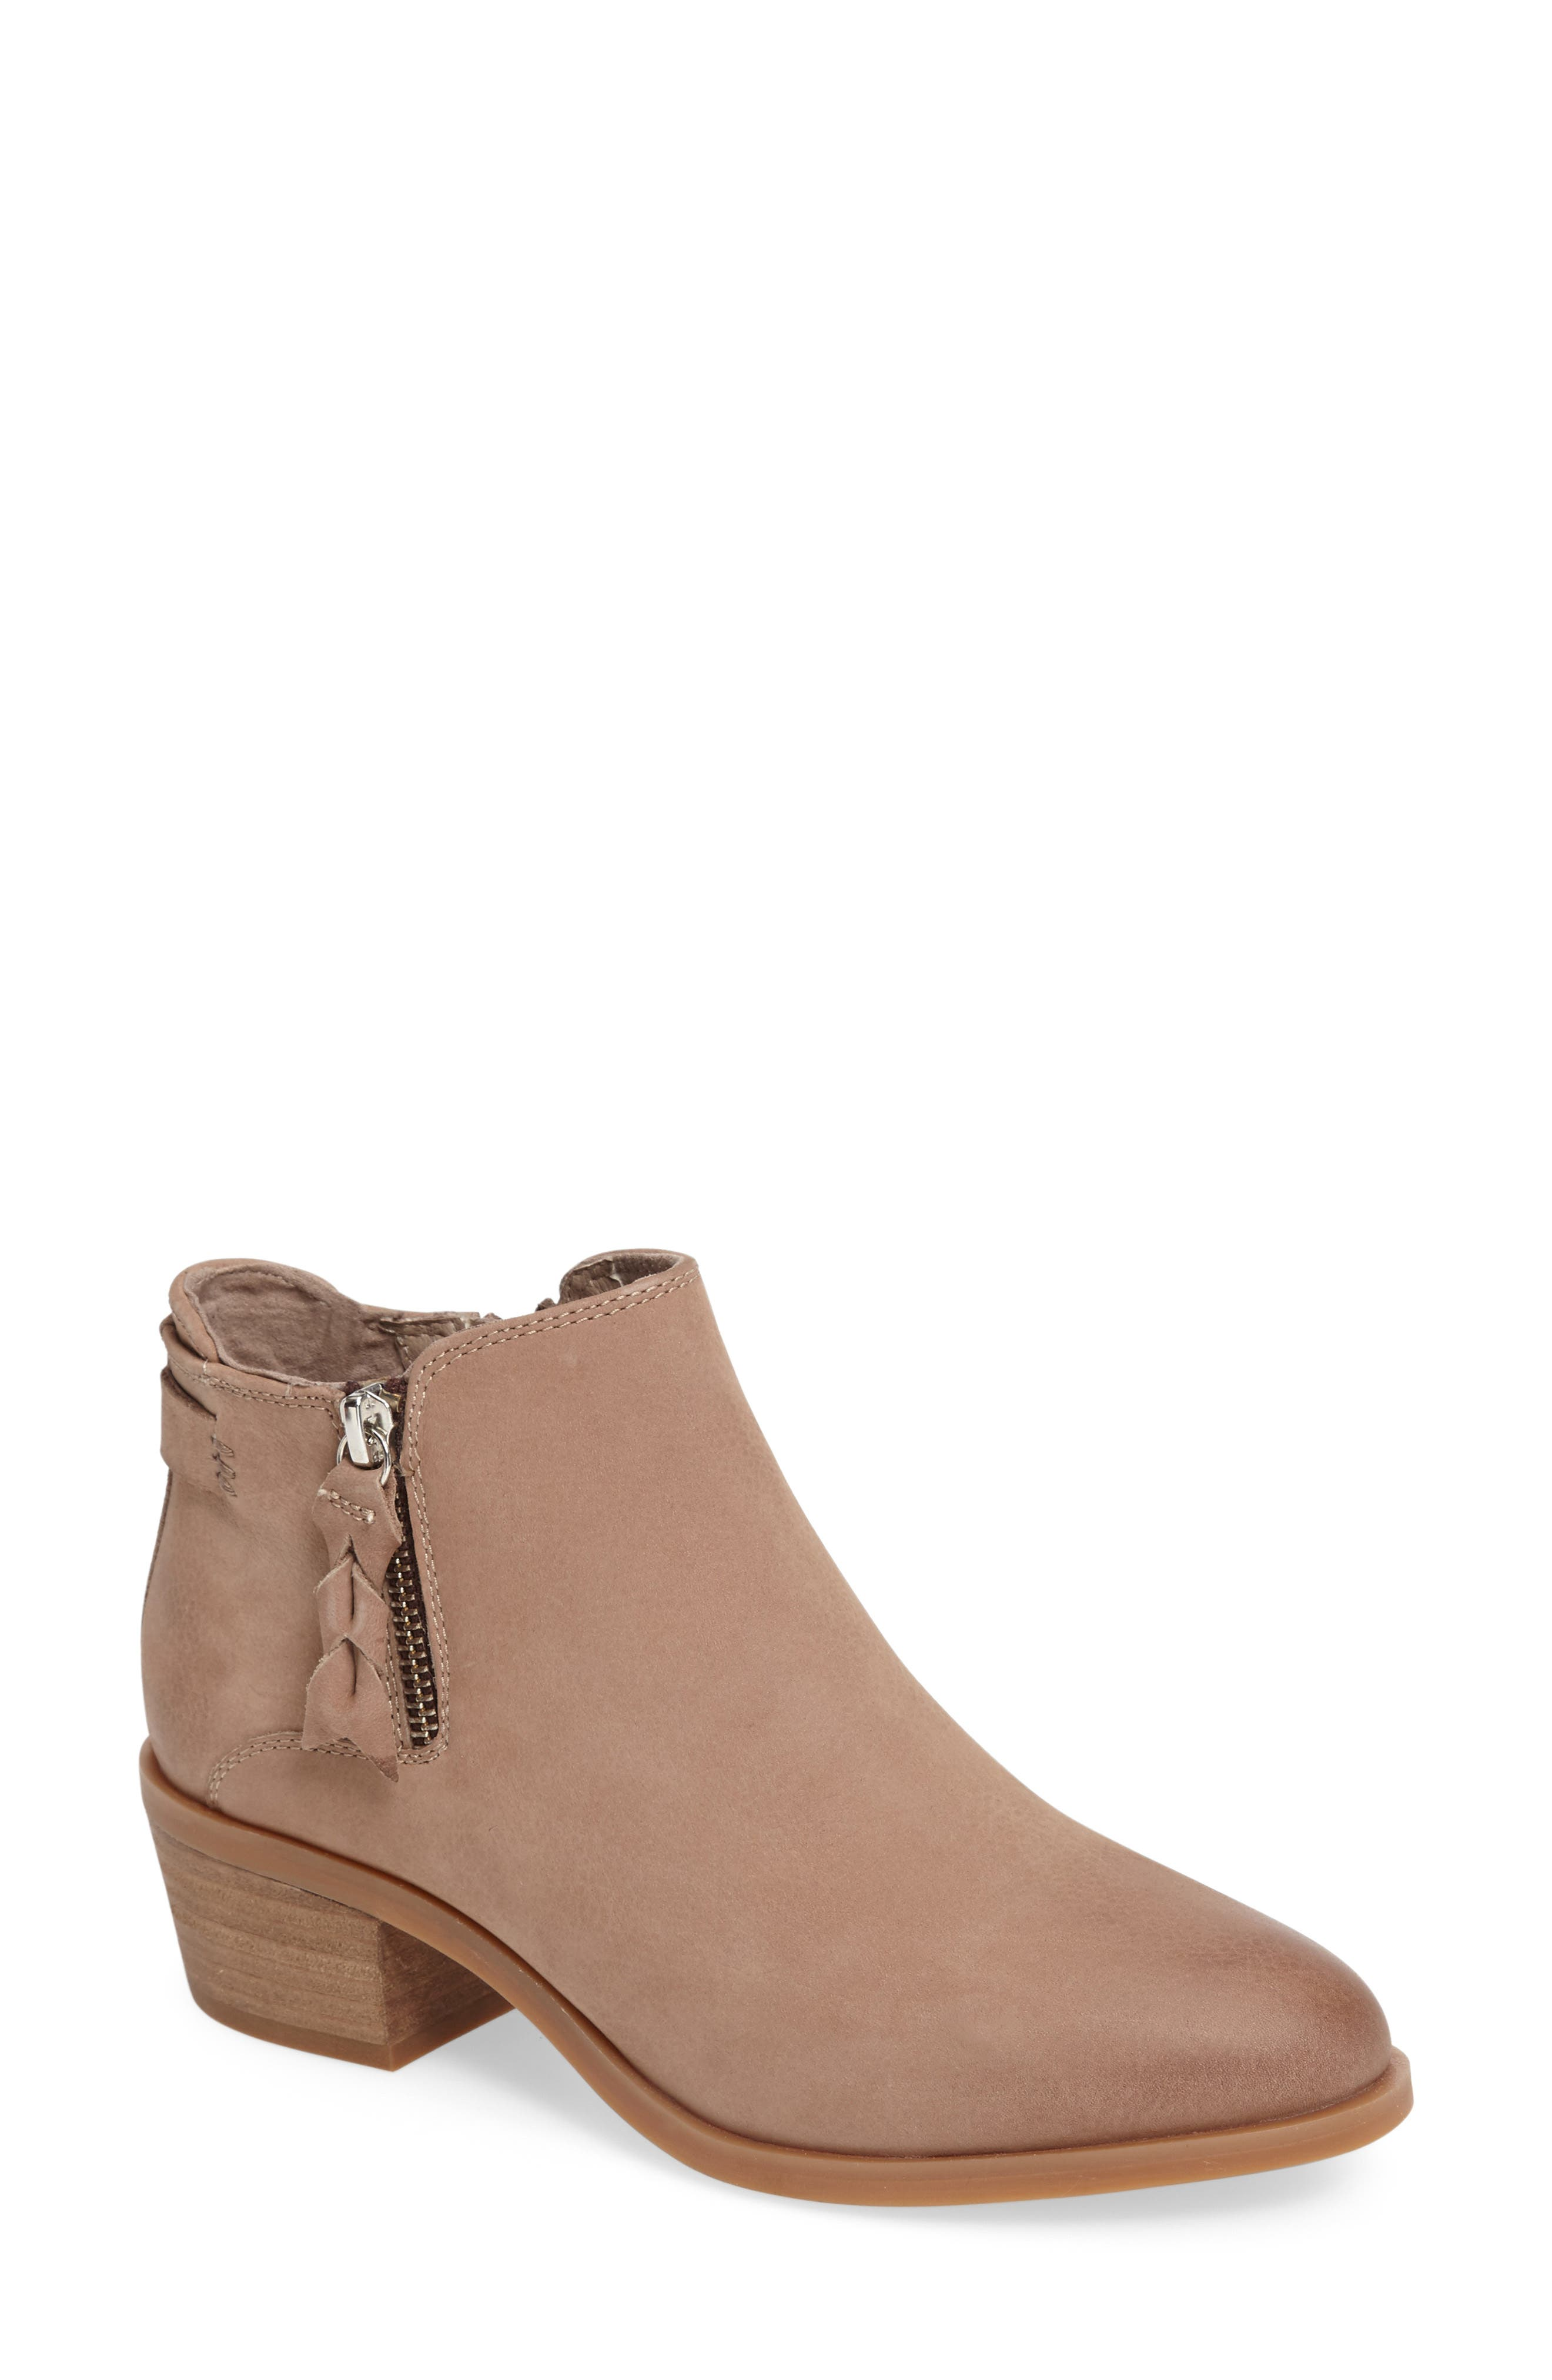 Kyle Bootie,                             Main thumbnail 1, color,                             Stone Nubuck Leather